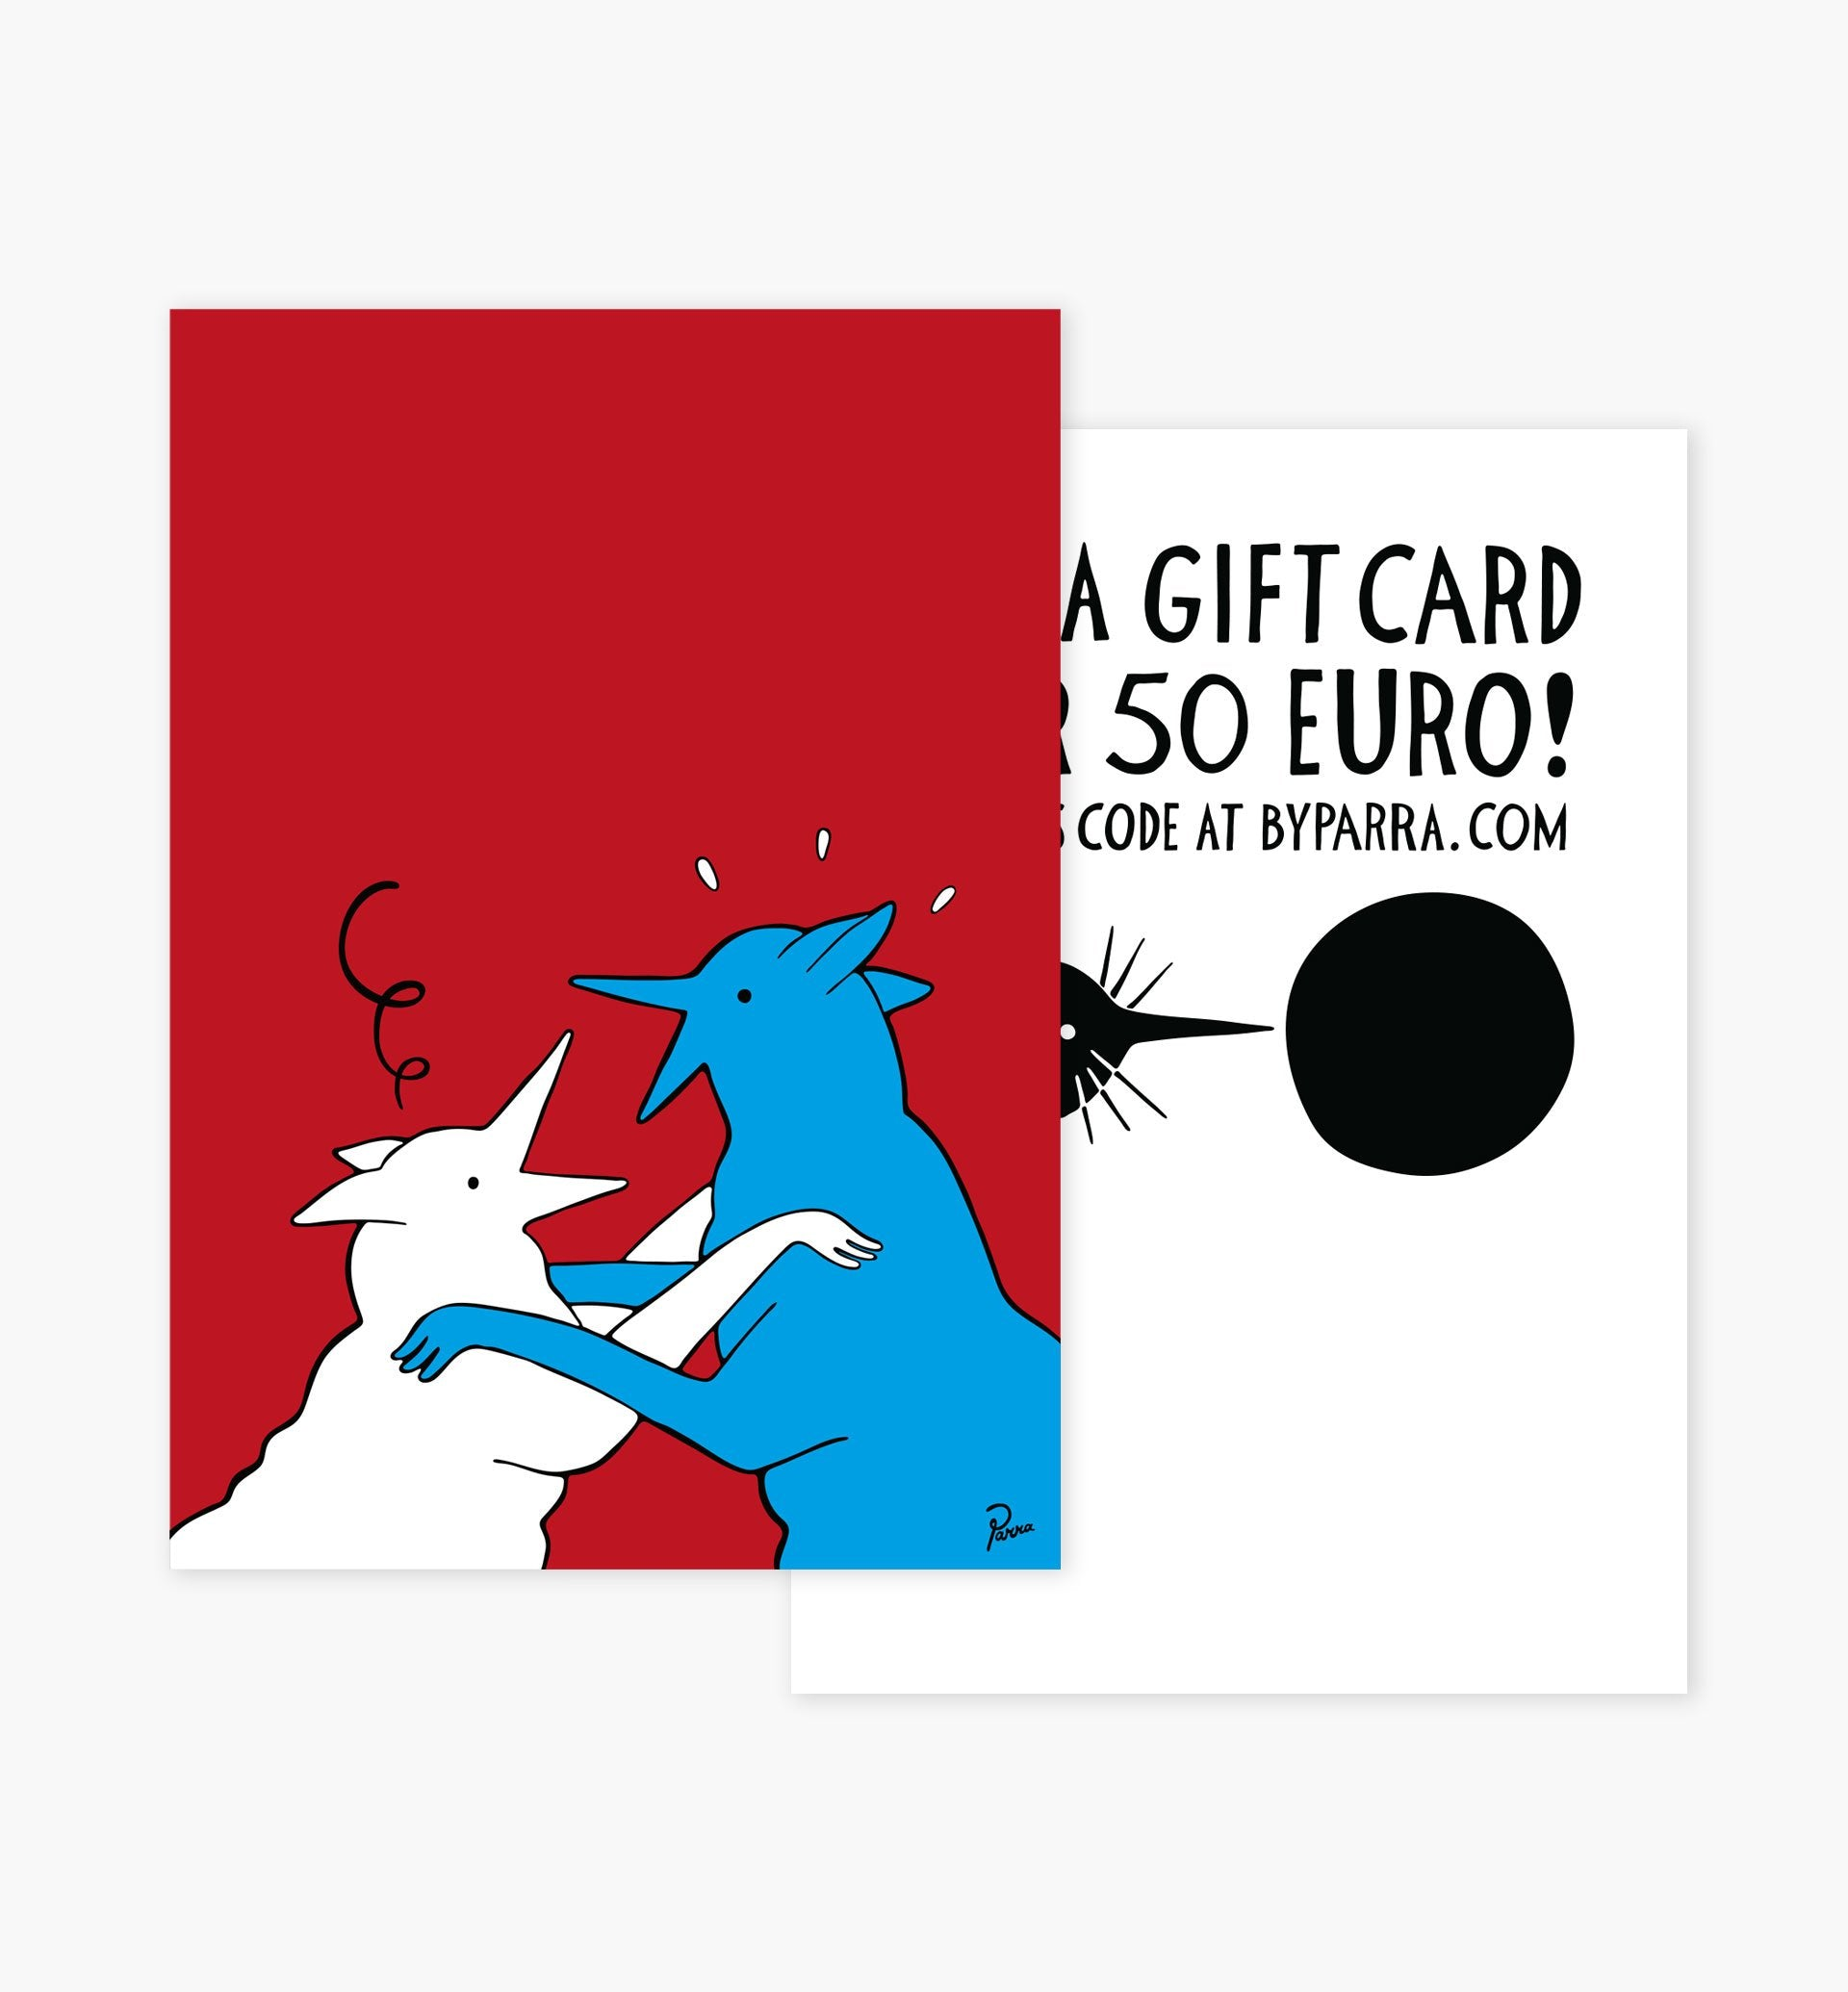 Parra - gift card 50